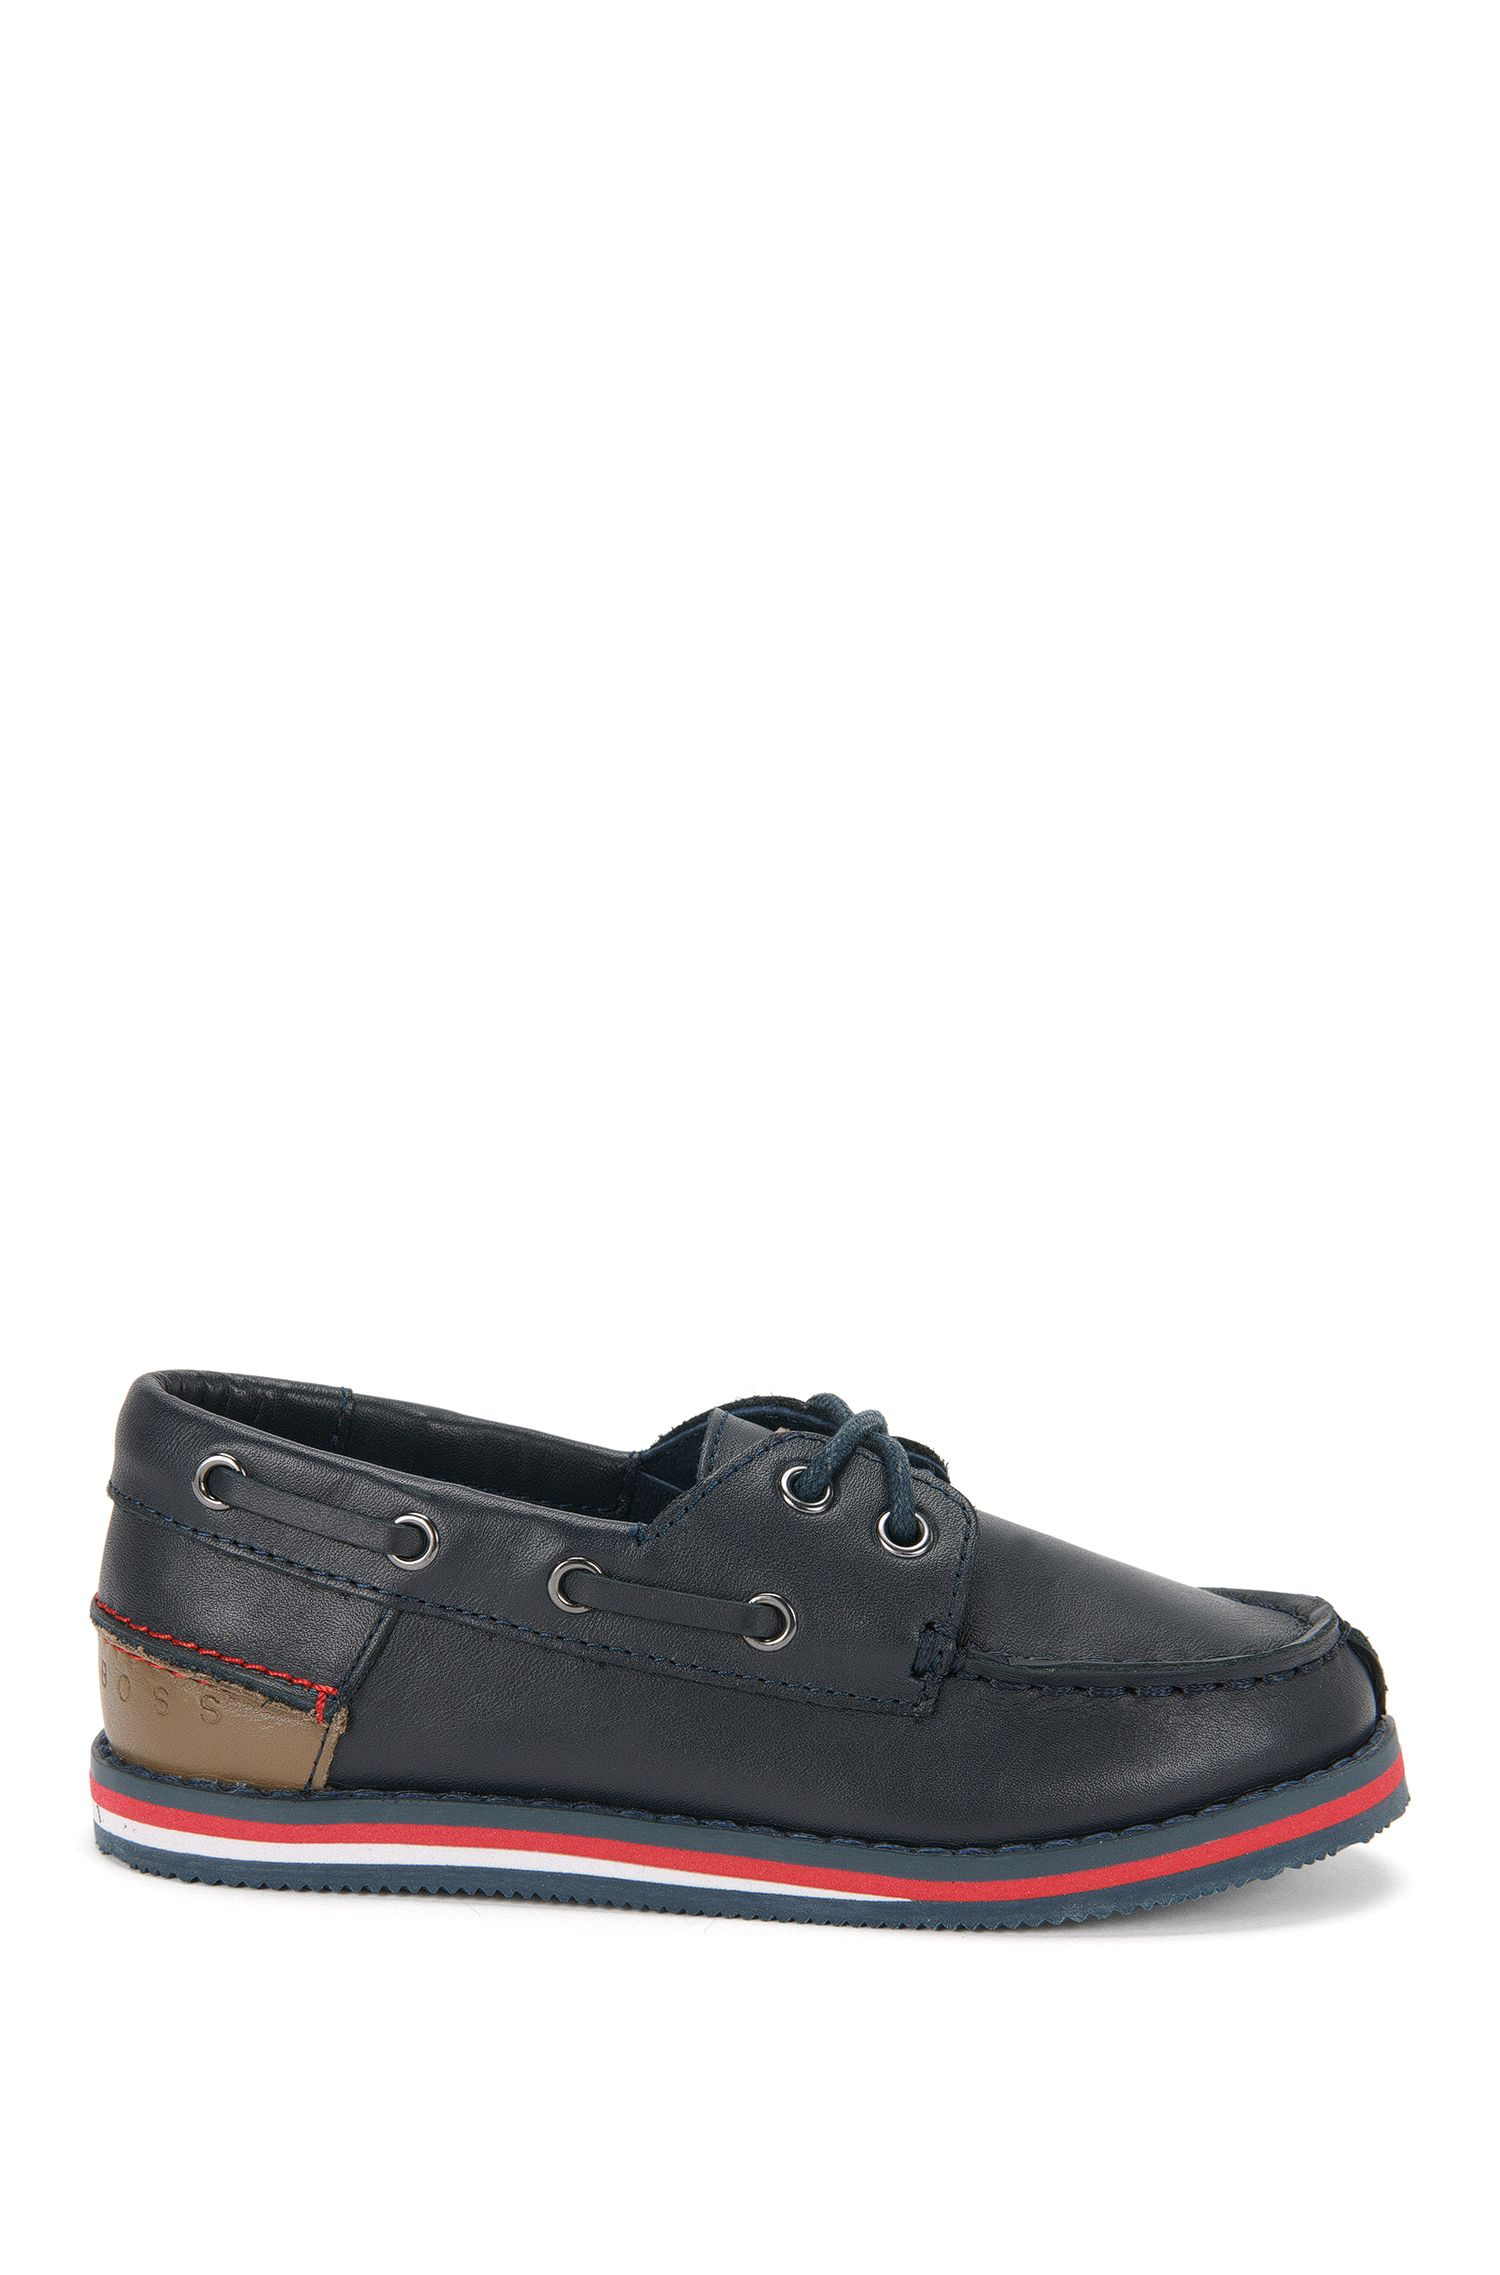 'J29116' | Boys Leather Boat Shoes